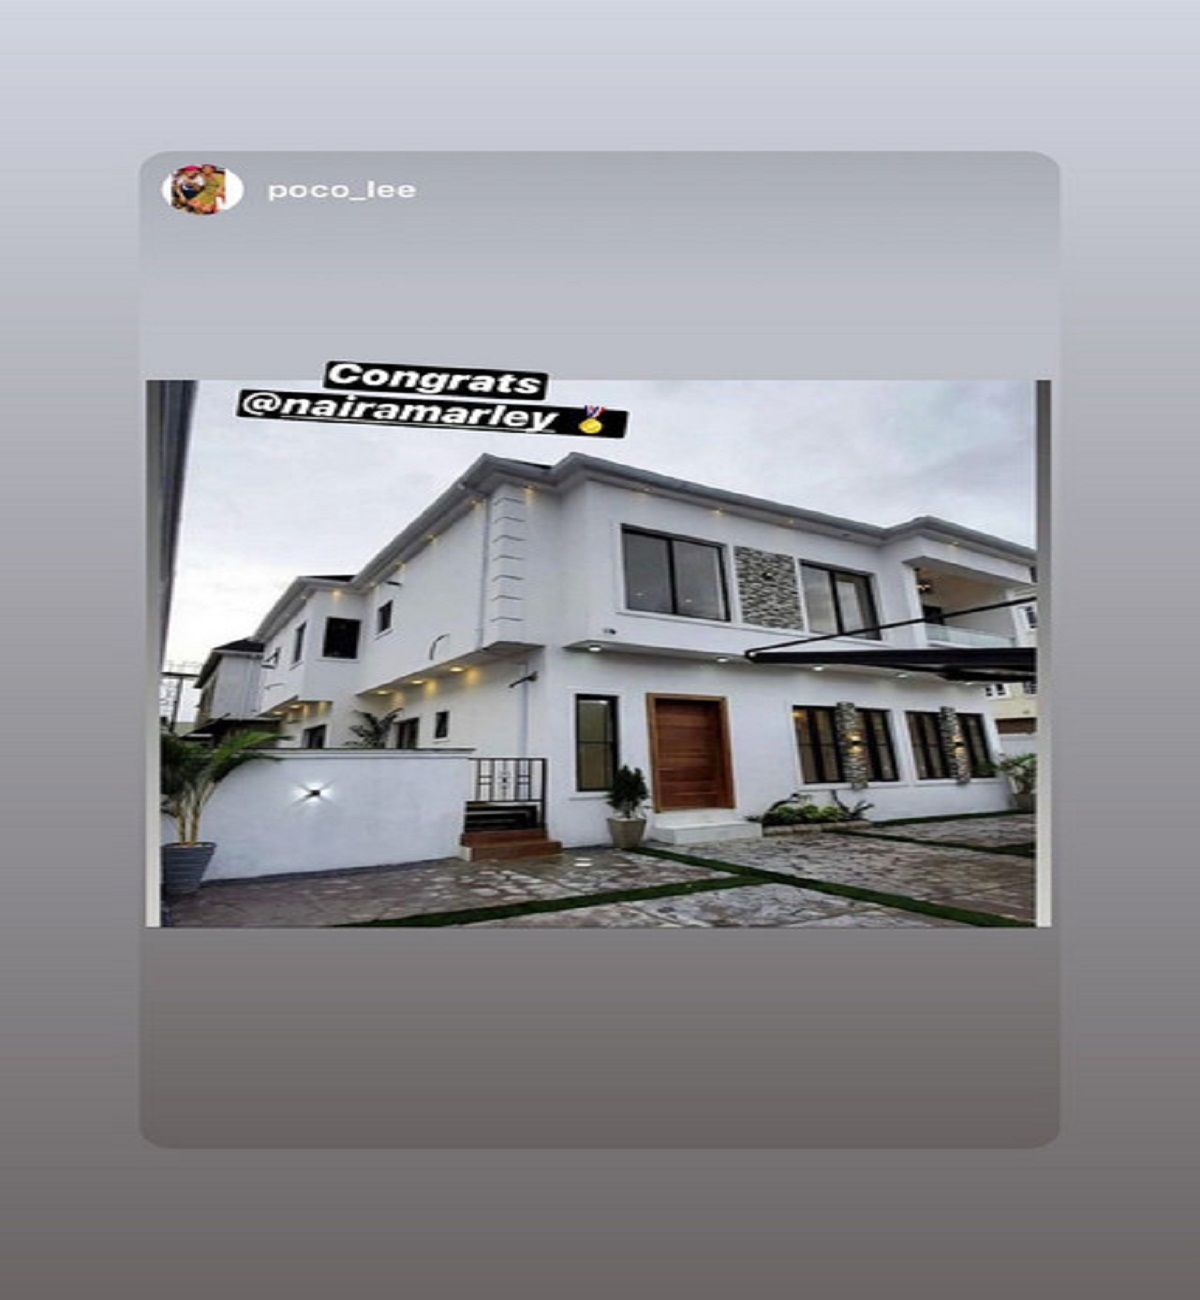 Nigerian rapper Azeez Fashola, also known as Naira Marley, has purchased a luxury property in Lagos for himself.